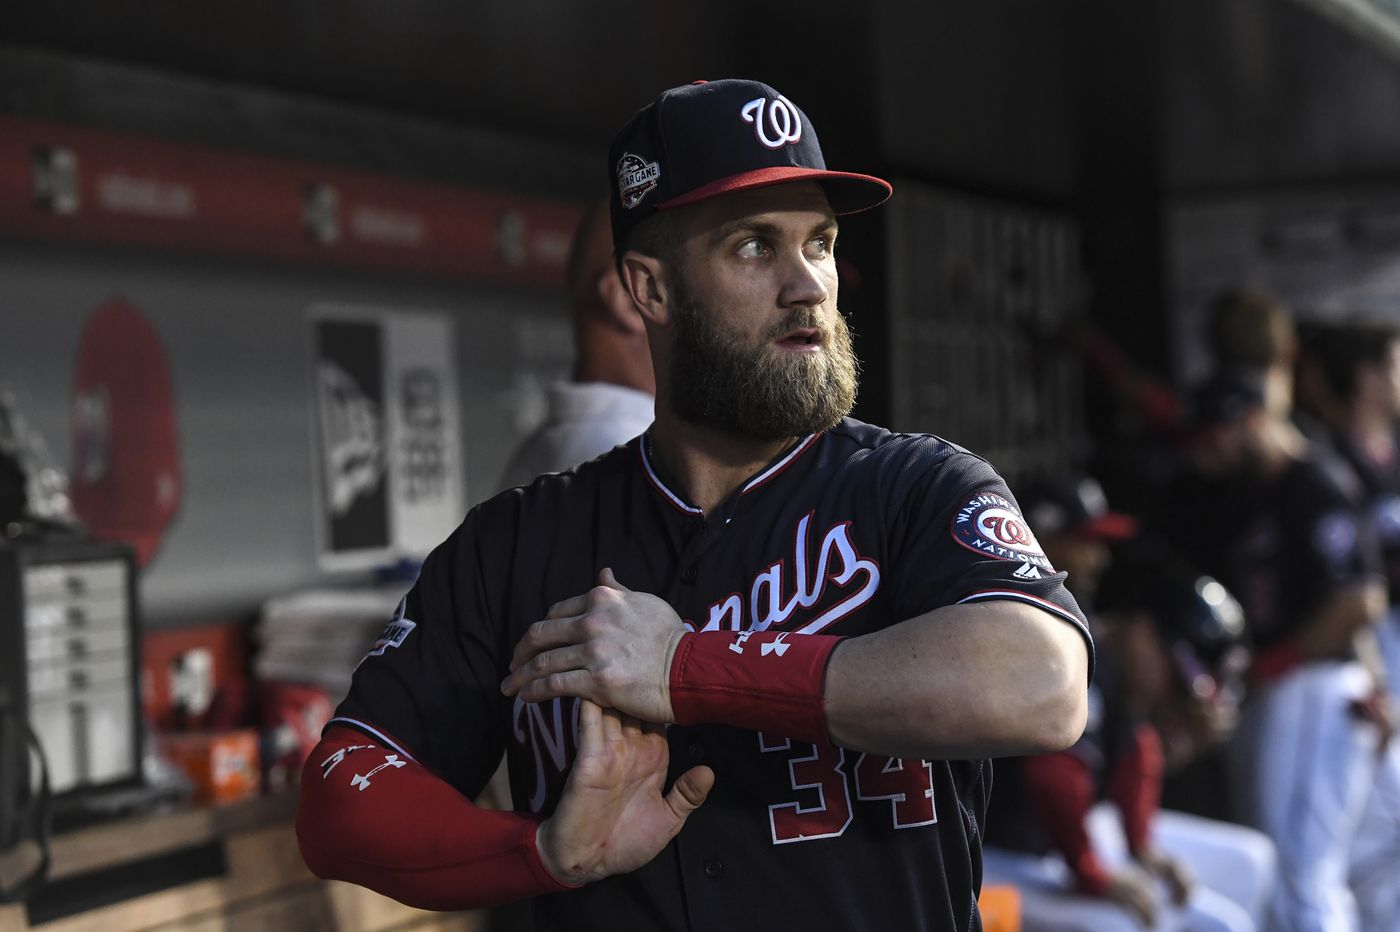 Giants Offered Bryce Harper 12-Year Deal, $310M Deal